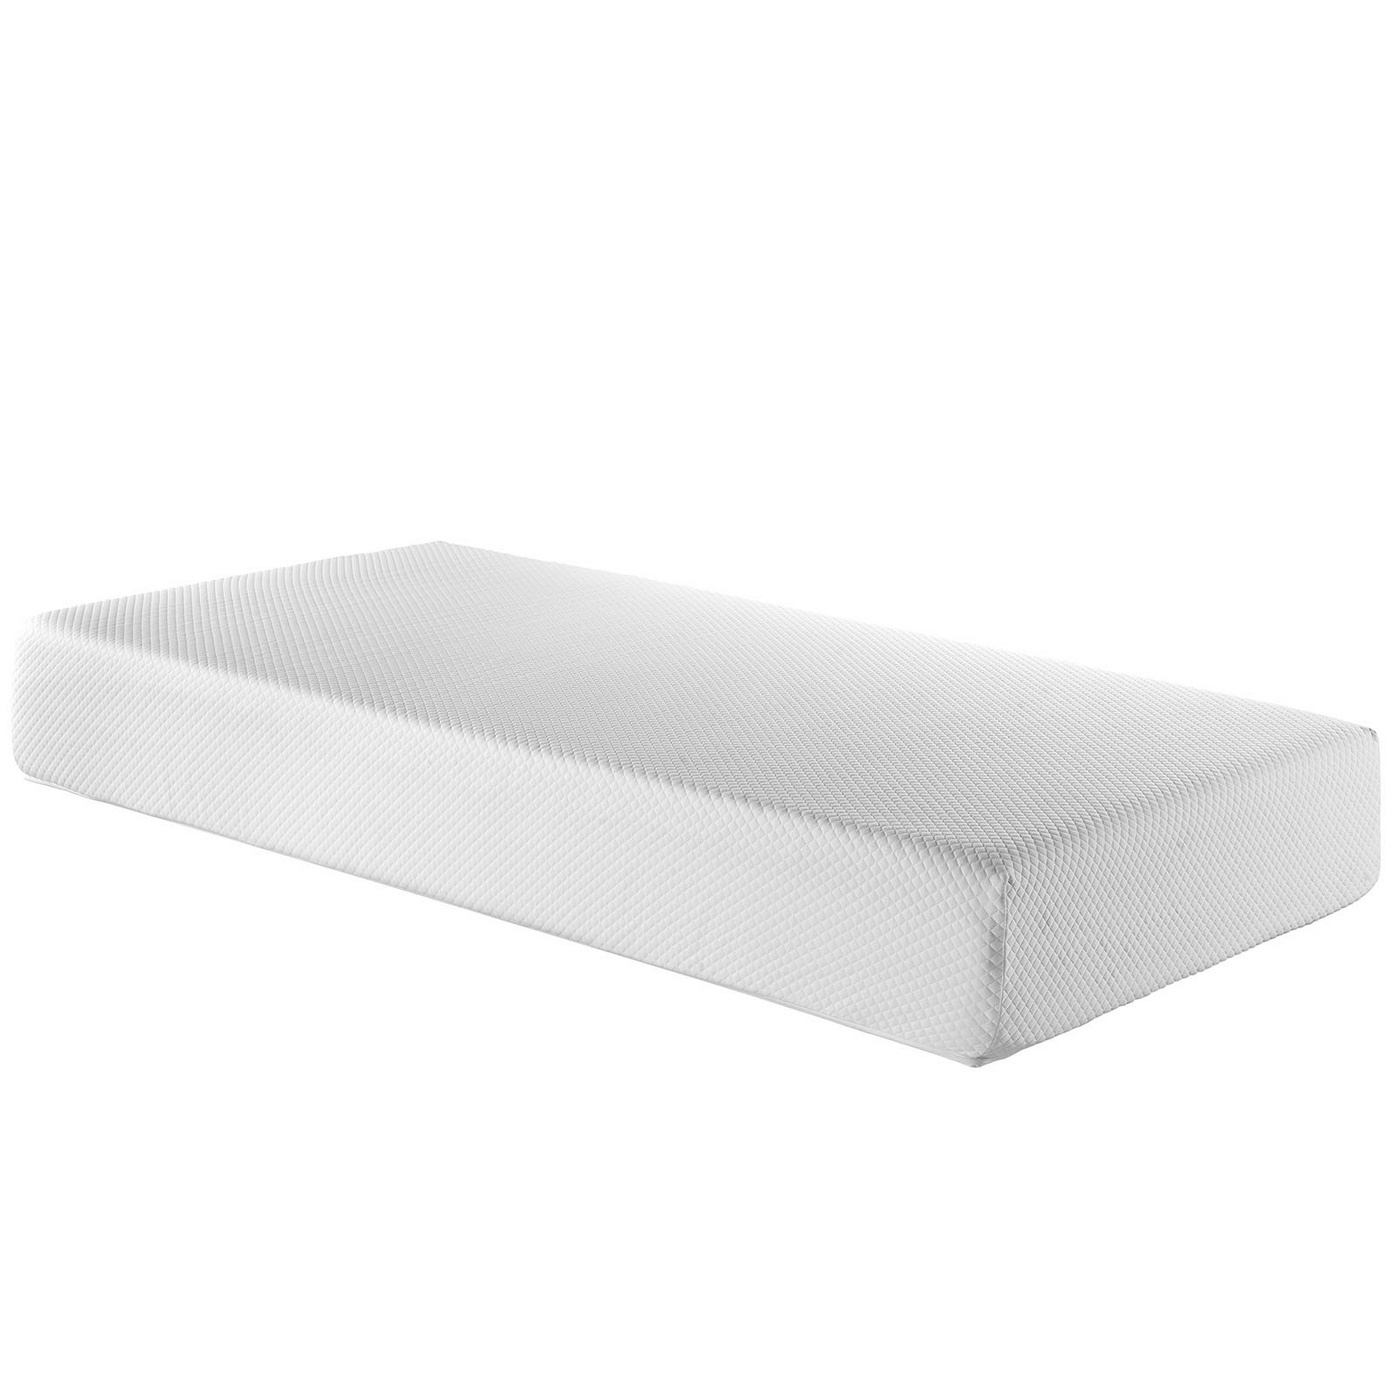 aveline certipur us gel infused 10 twin mattress white